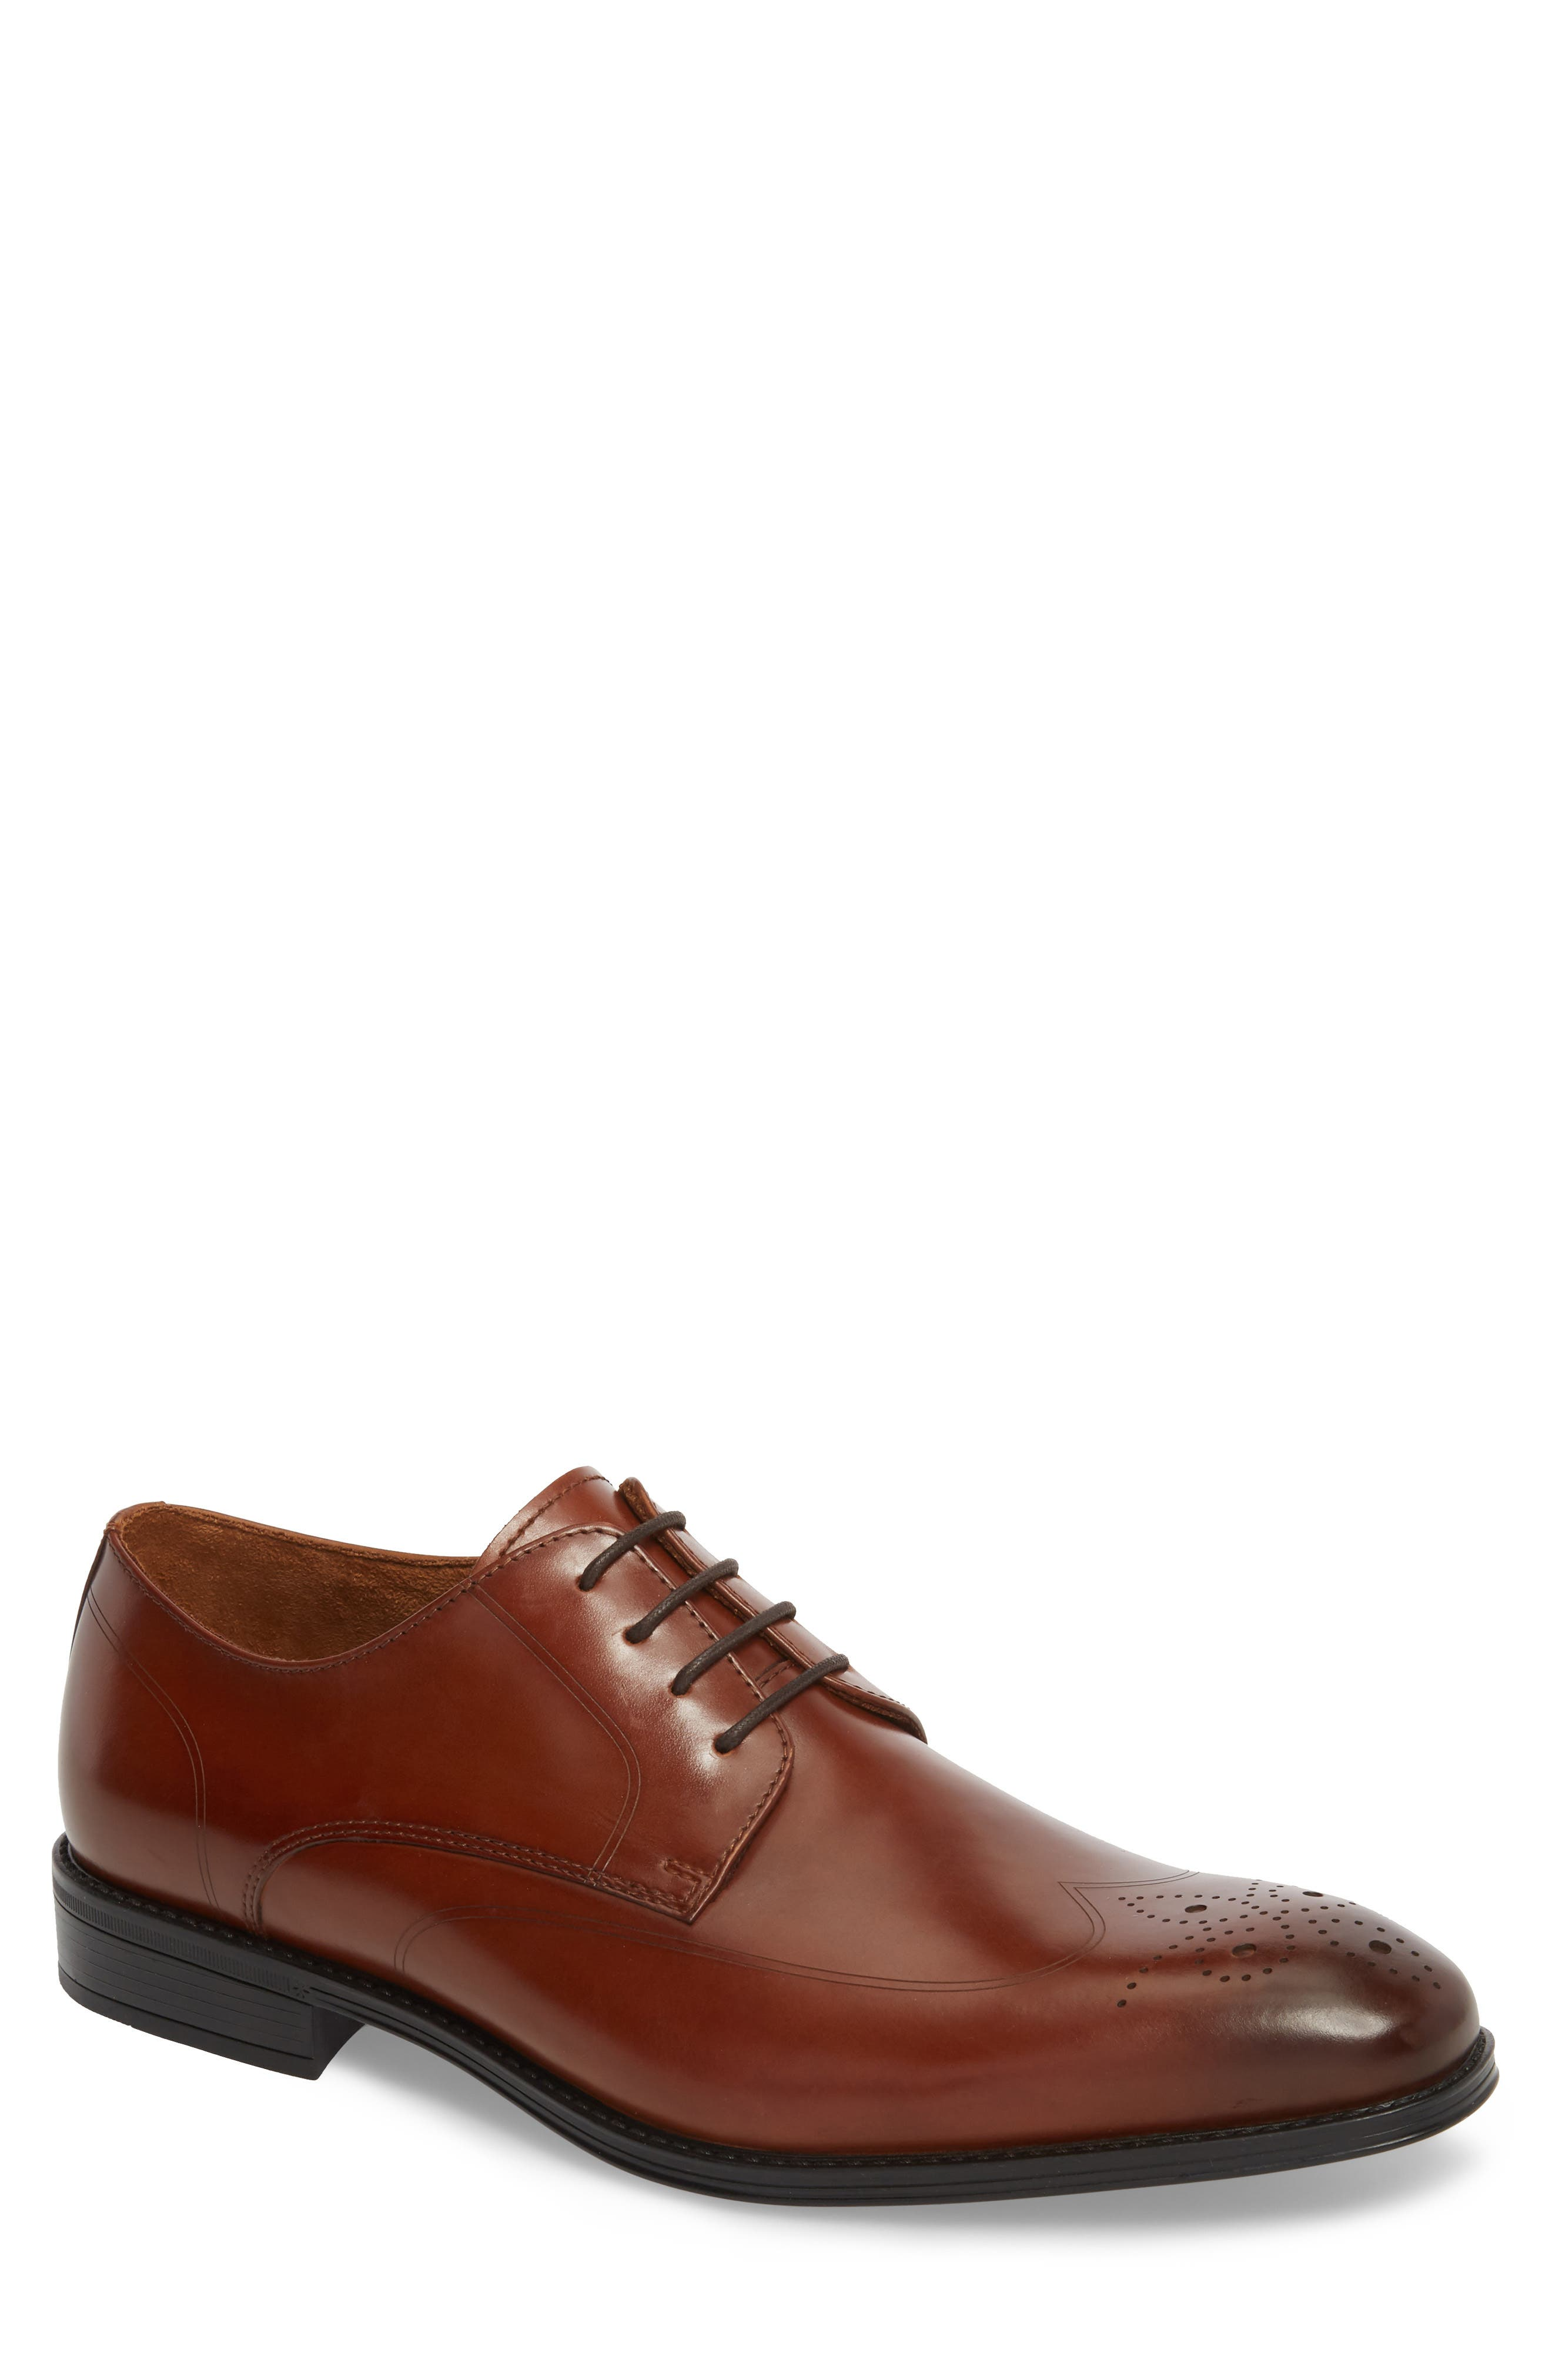 Kenneth Cole New York Men's Abbott Plain Toe Lace Up Oxford